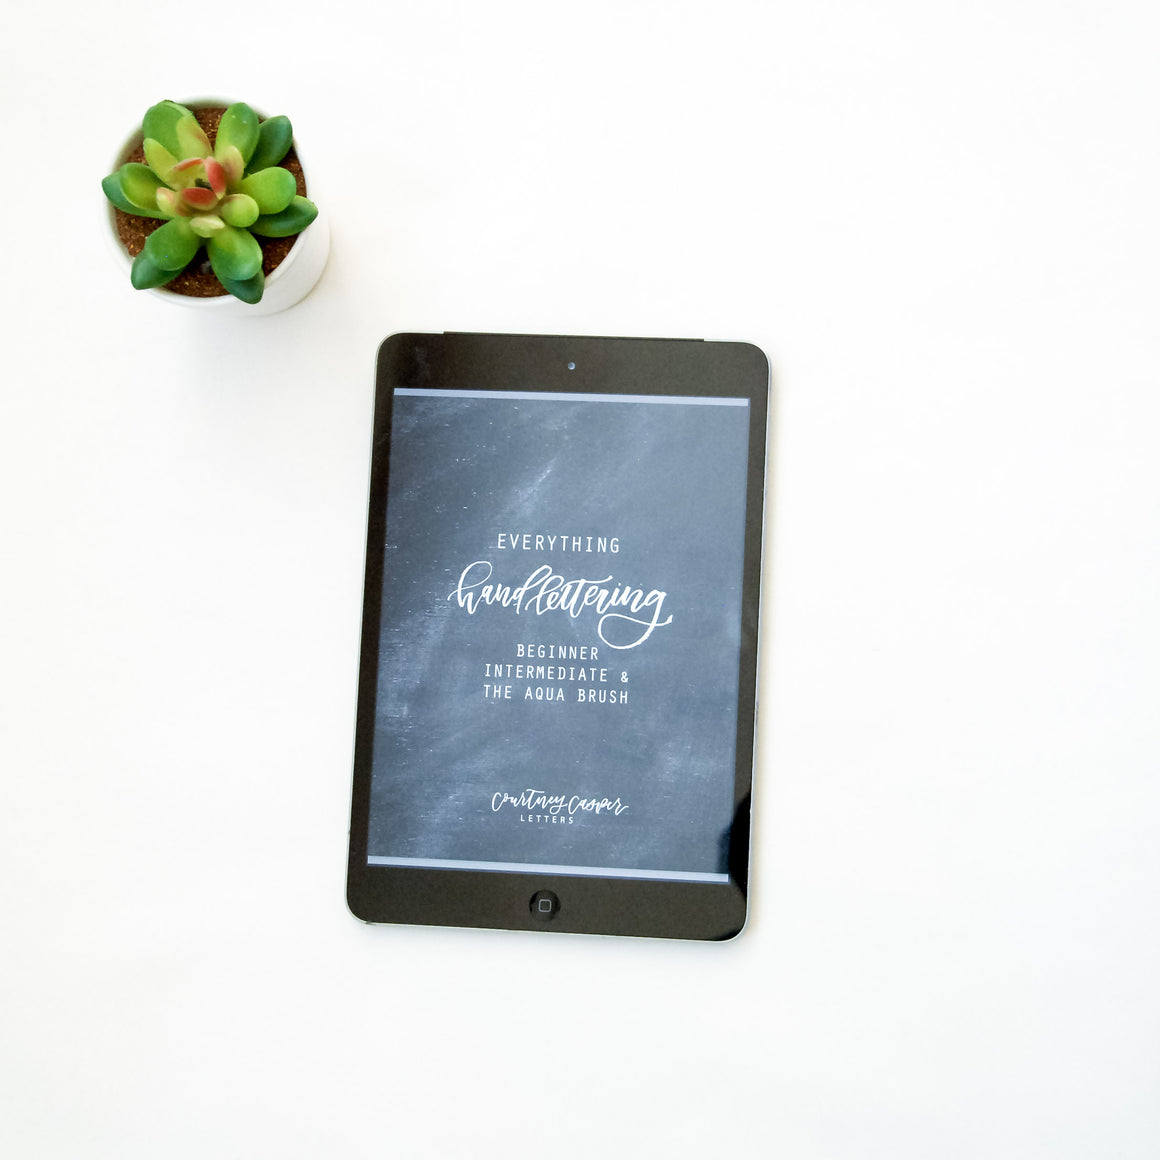 The EVERYTHING Workbook Download